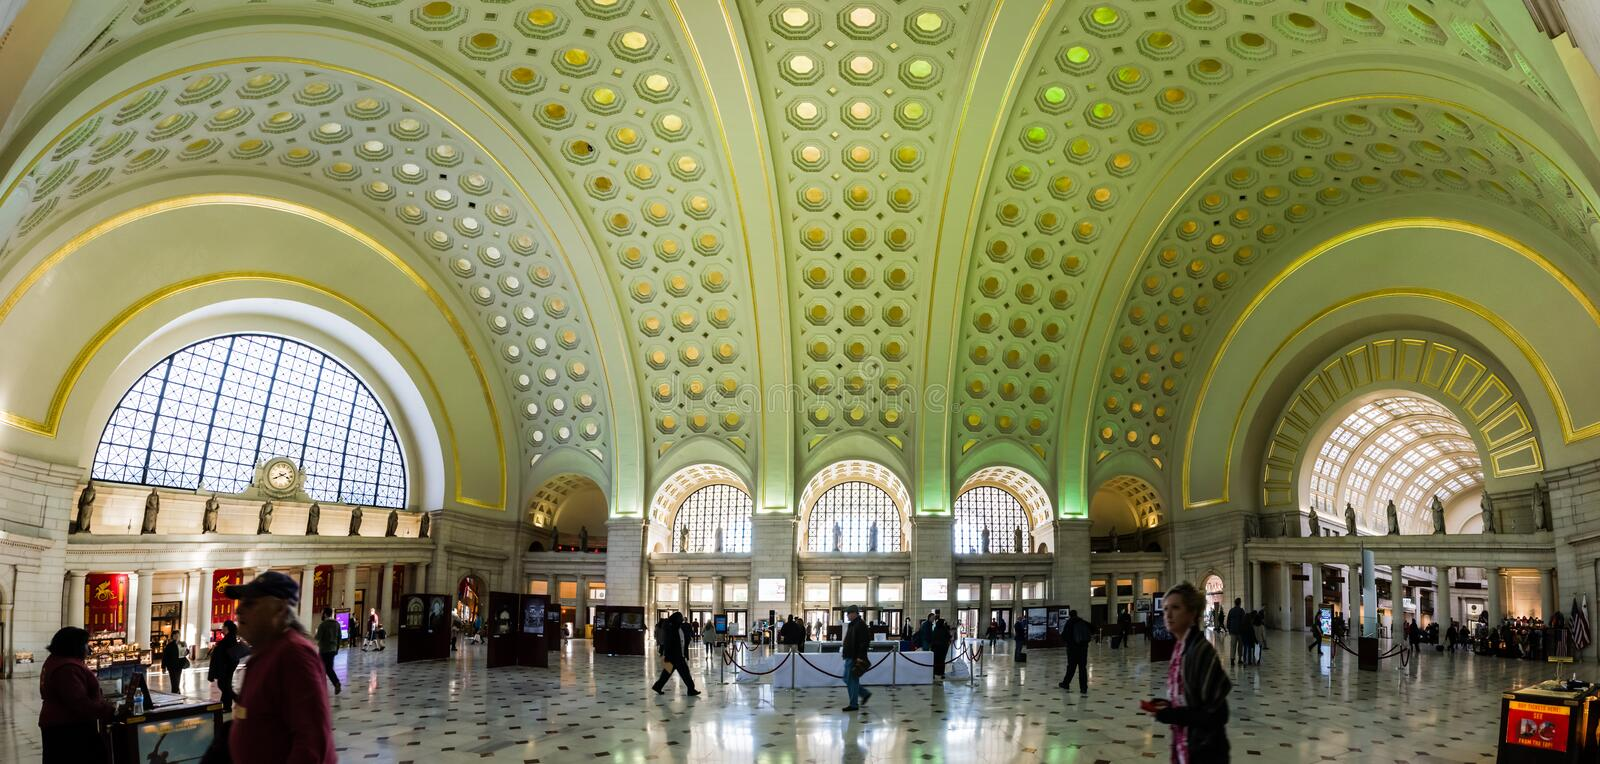 Verbands-Stations-Architektur-Innenwashington dc im November 2016 lizenzfreie stockfotos